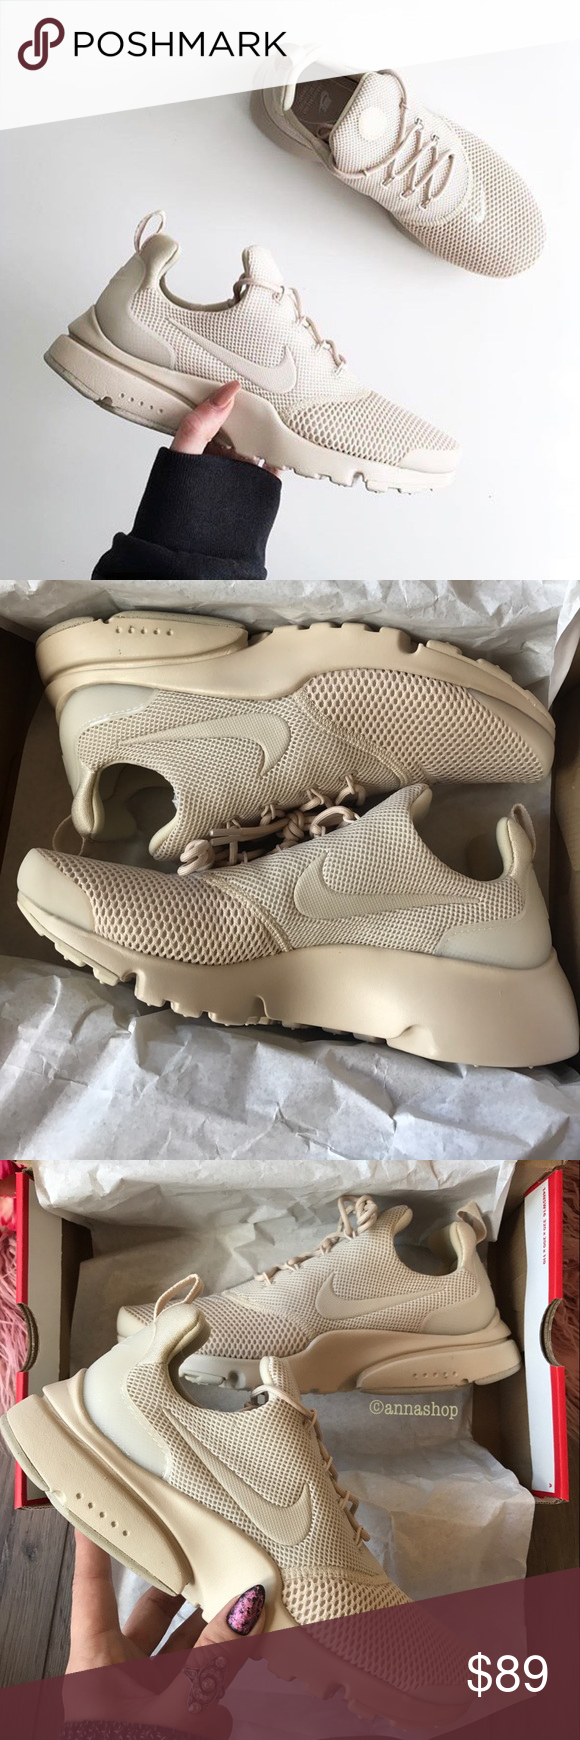 59c1eb0eb536 ... discount code for nwt nike presto fly oatmeal brand new with box price  is firmfly fast